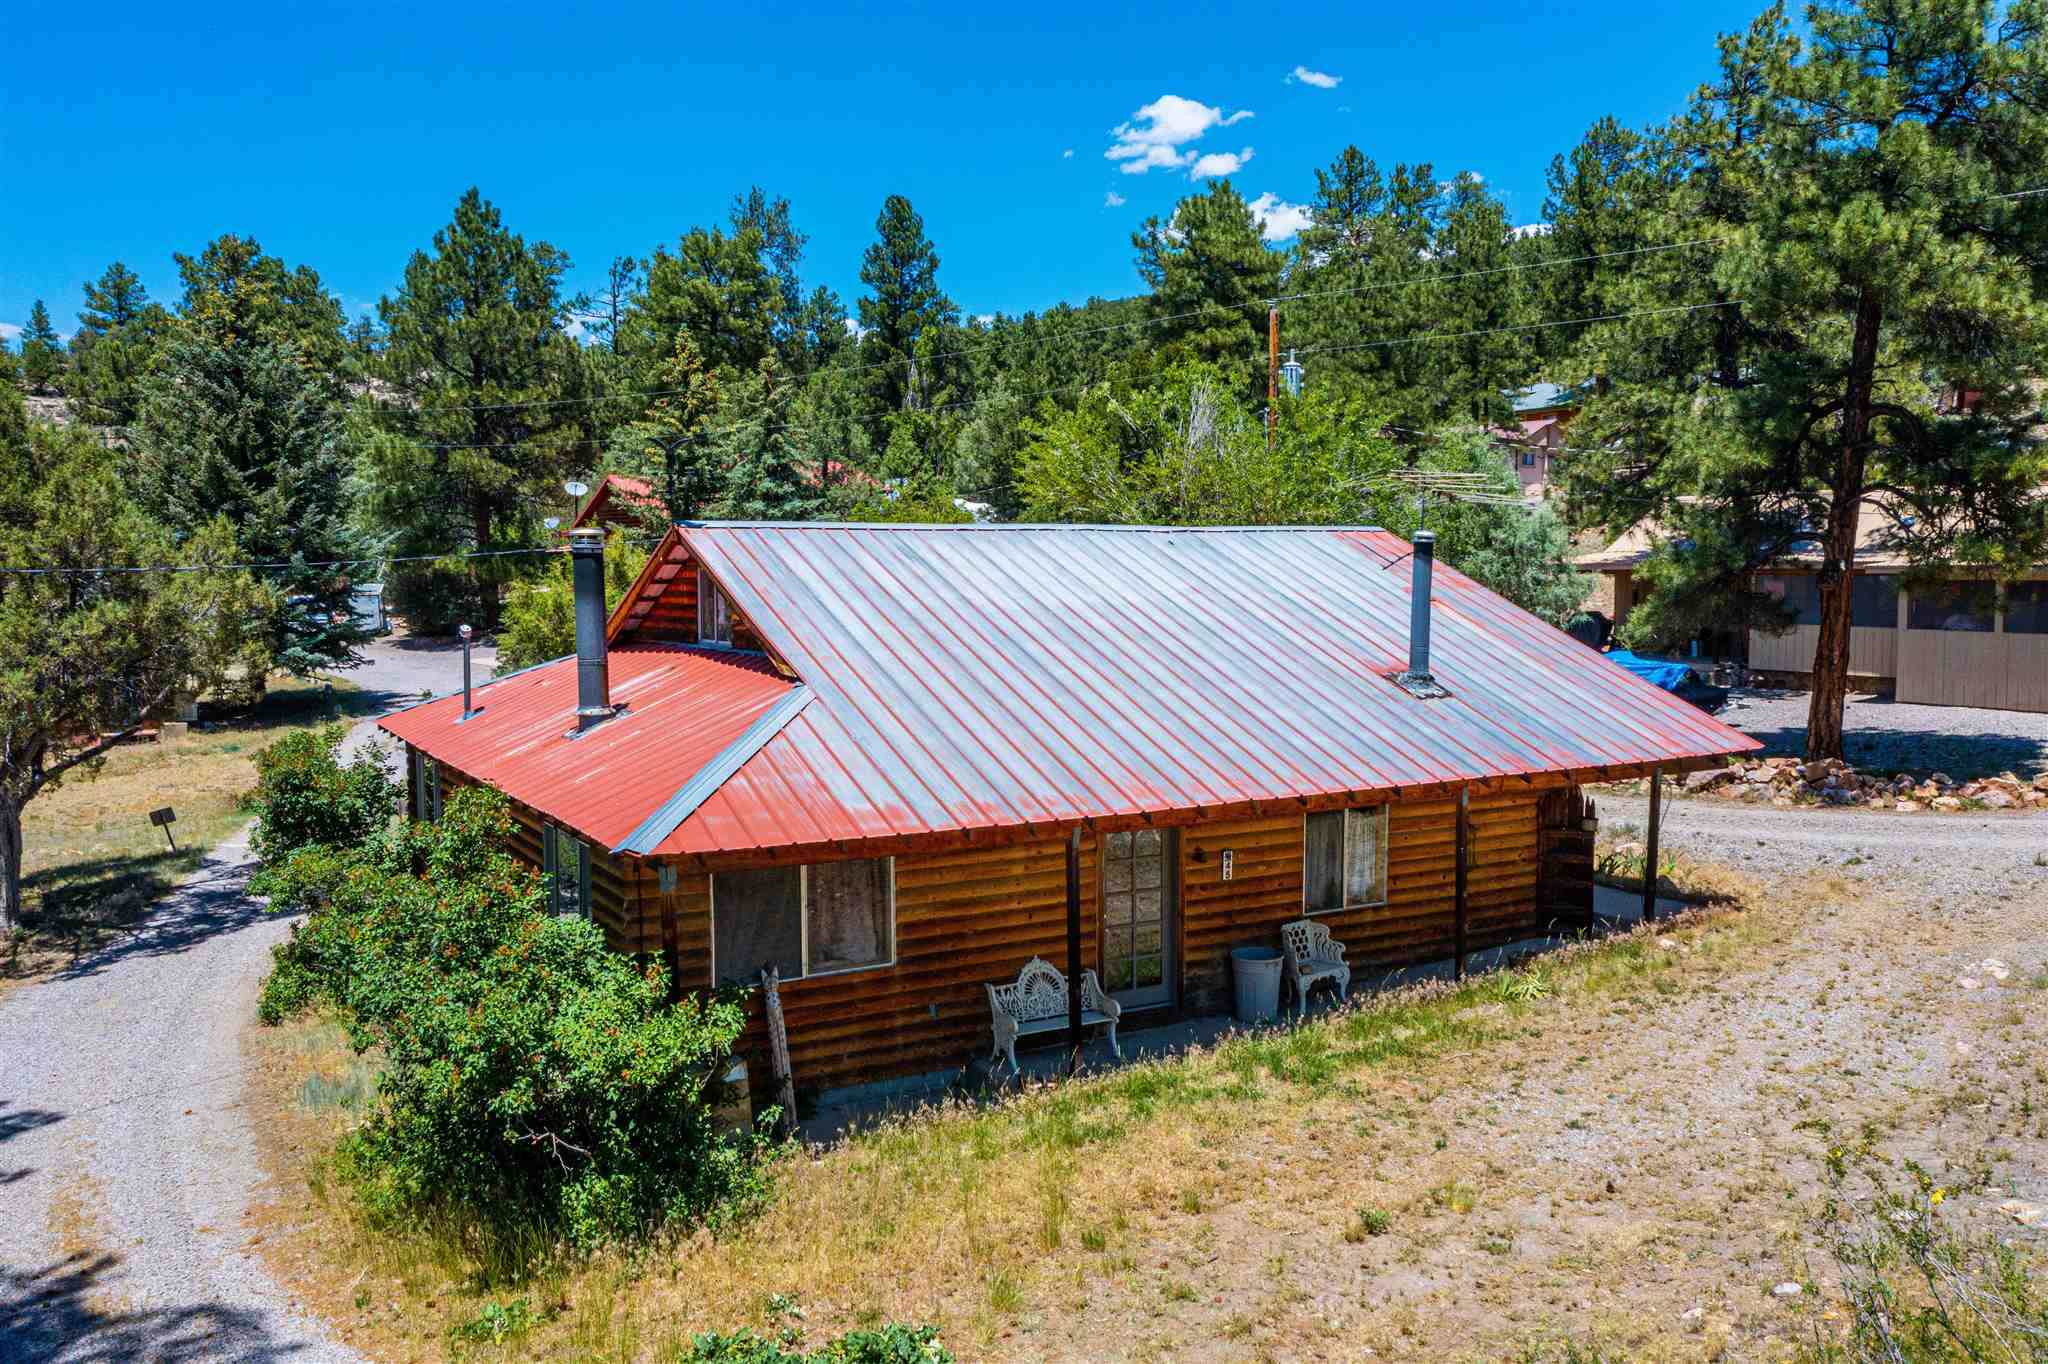 Amazing, cozy cabin situated on beautiful countryside valley. Direct access off of US Highway 64, 20-minutes south of the historic town of Chama, NM.  Equally positioned within a 15-minute drive of the 1.5M acre Carson National Forest to the ease and the Heron and El Vado Lake State Parks to the west.  Santa Fe is +/- 90 minute drive. parcel is generally level with a good combination of native grass meadows and stands of juniper and cedar trees. Spectacular views of mountains and majestic scenery.  Very peaceful property a must see!